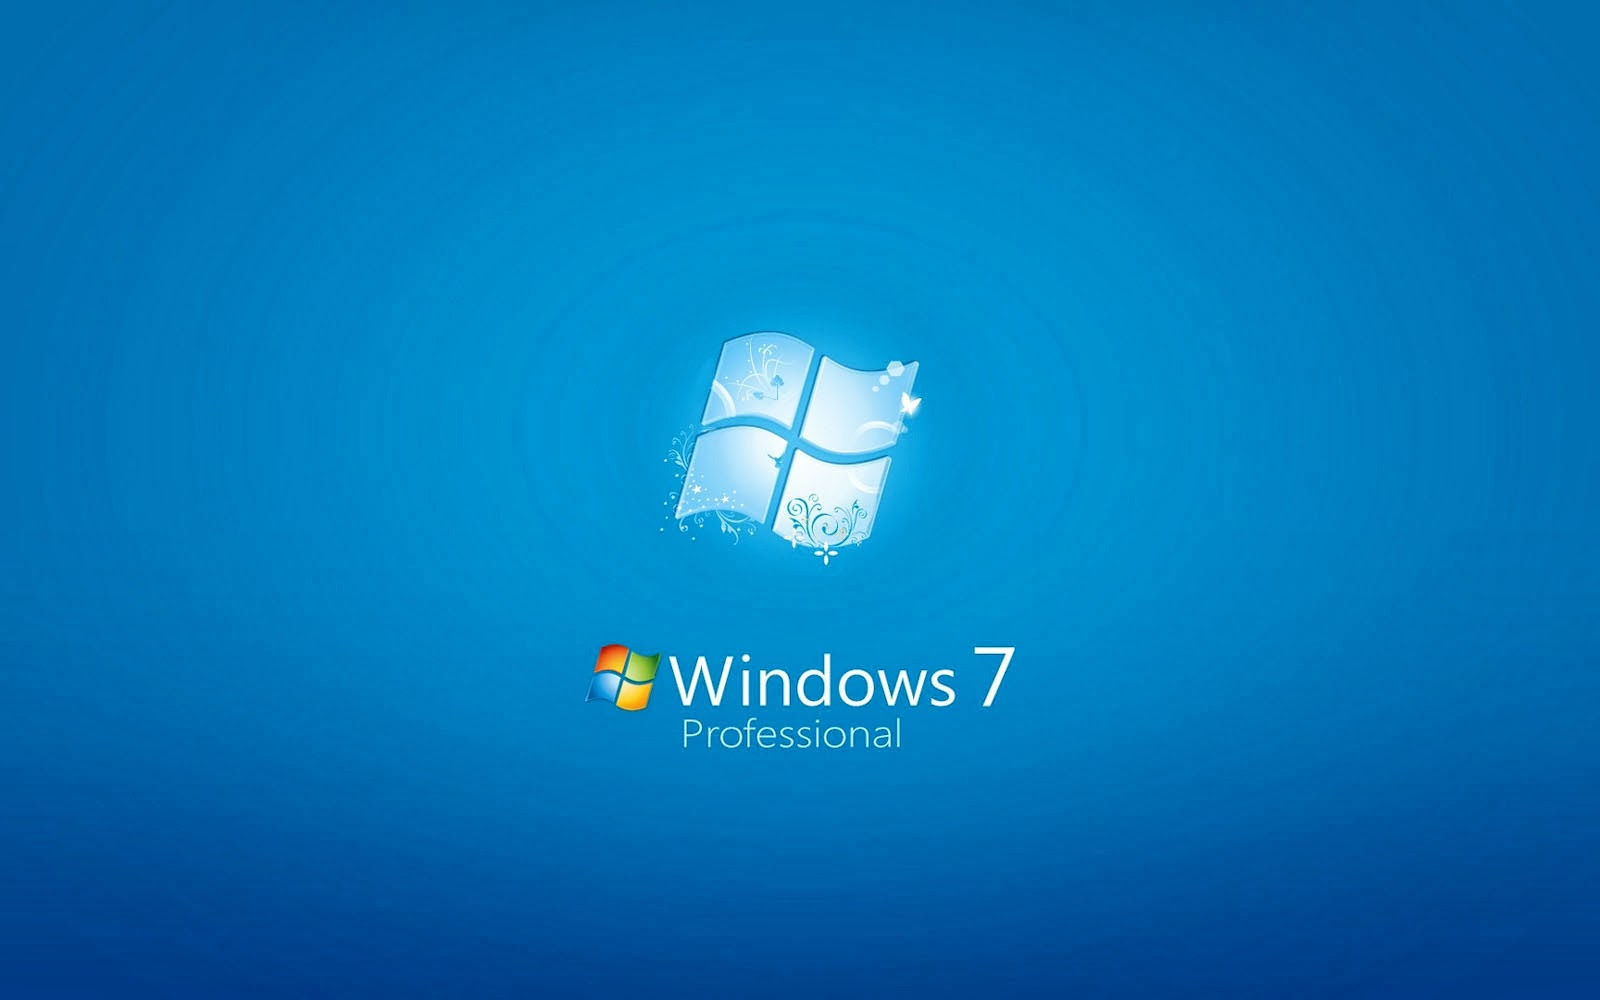 wall paper windows 7 - photo #7